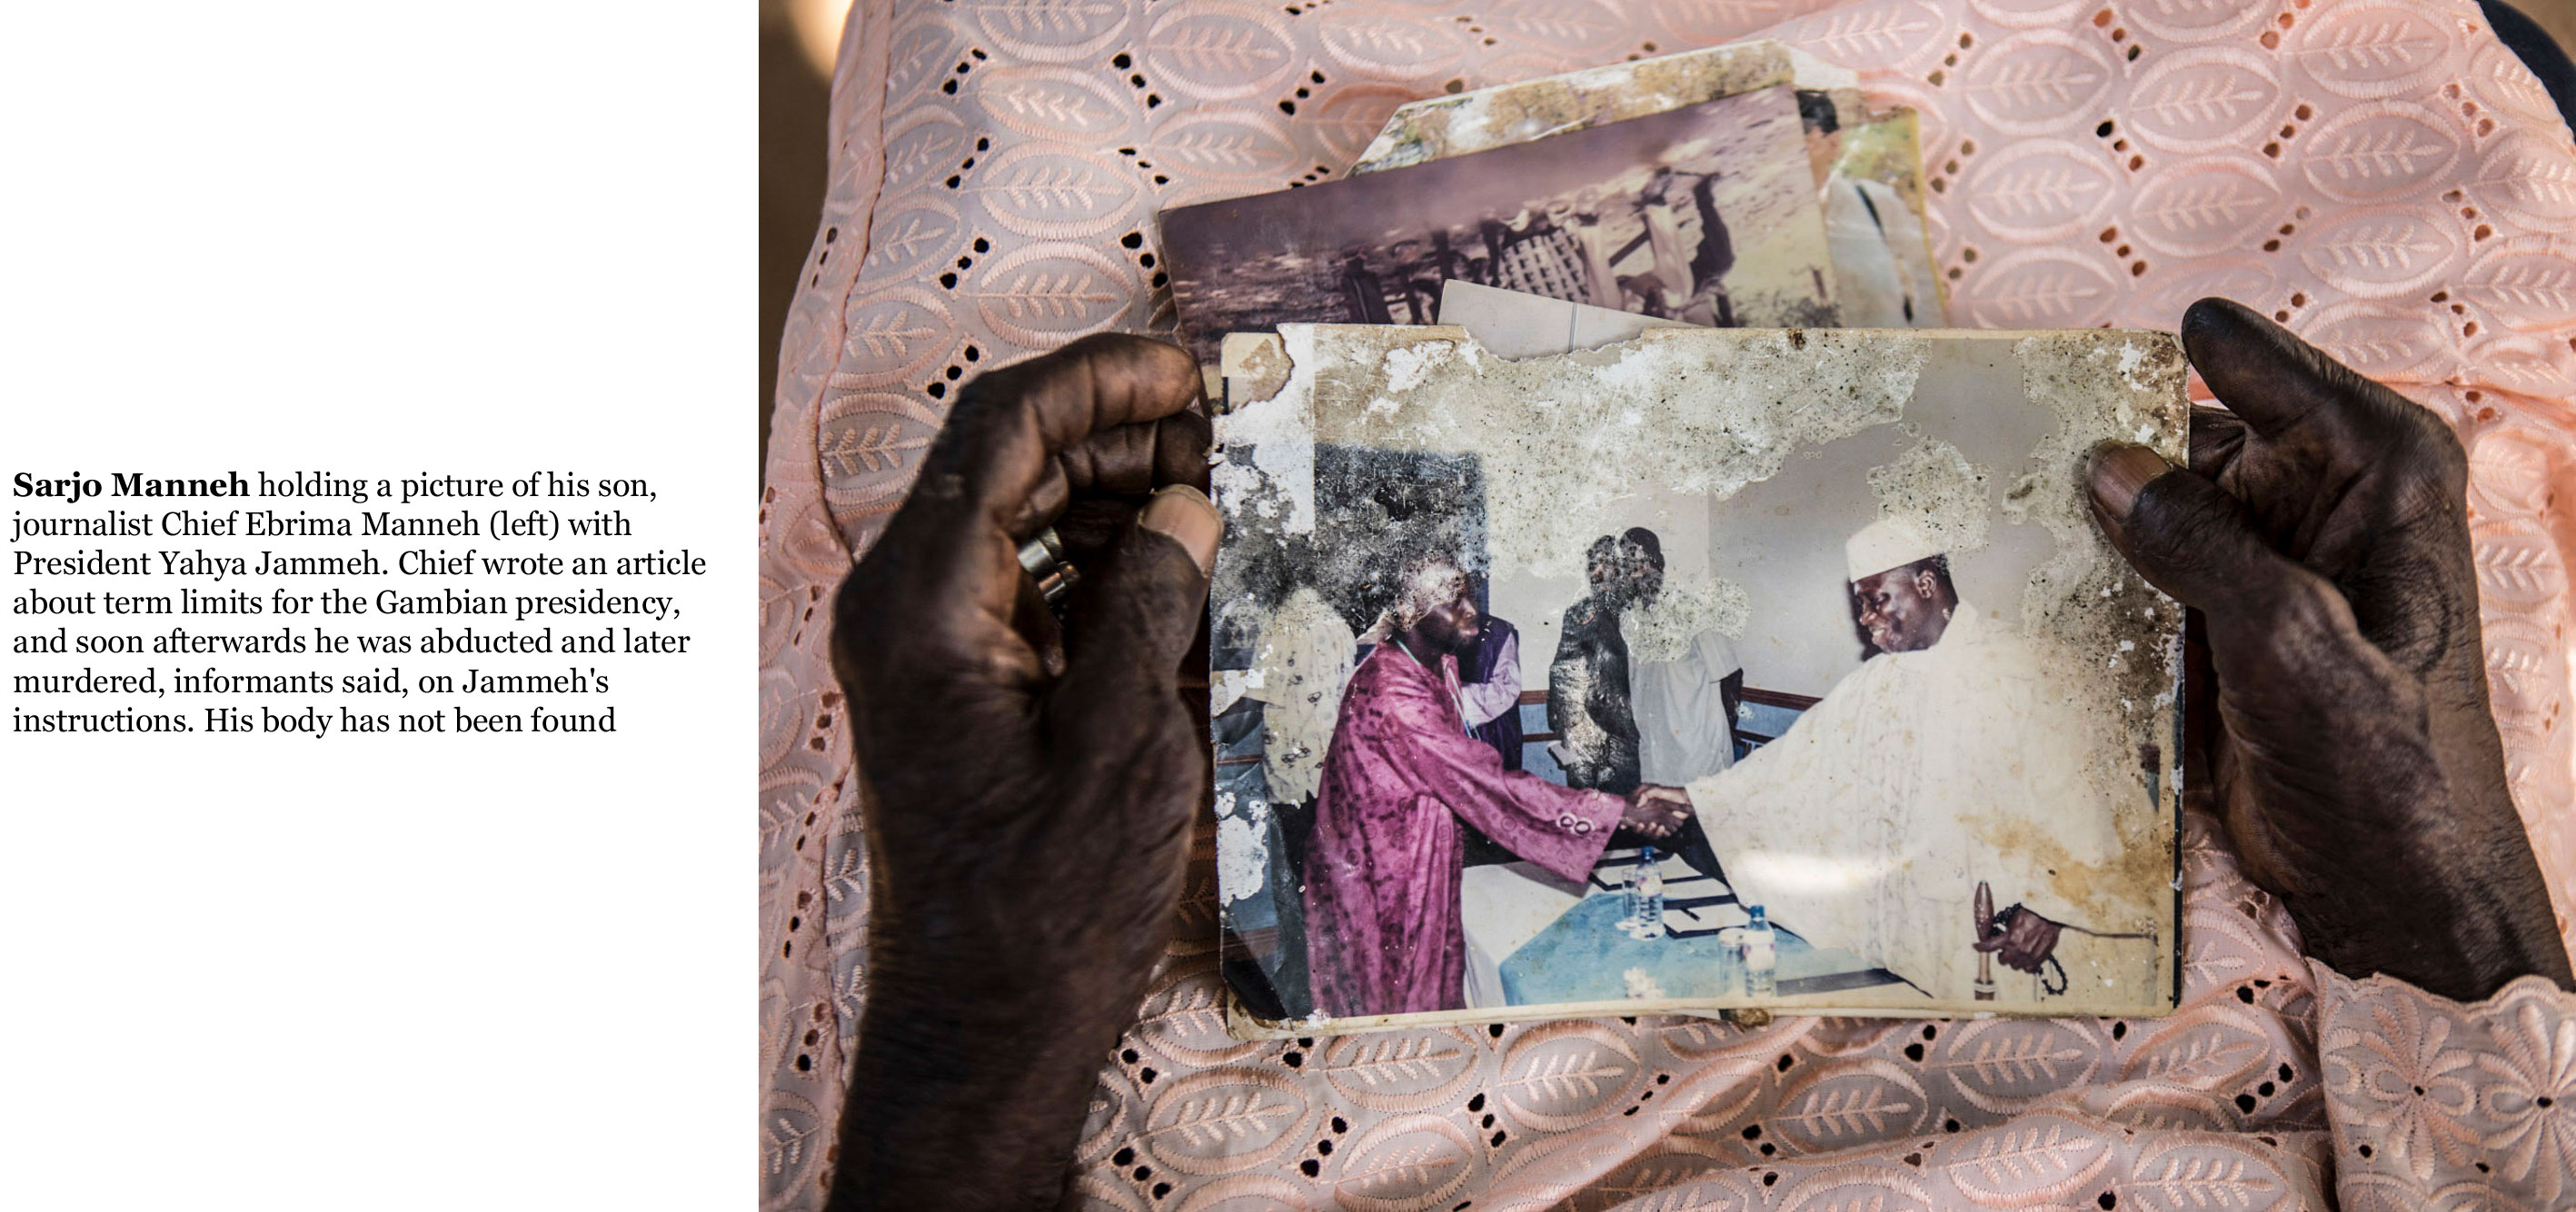 Gambia victims and resisters-Sarjo Manneh holds a photo of his murdered son, journalist Chief Ebrima Manneh, with President Yahya Jammeh 19_TEXT_web ©Jason Florio